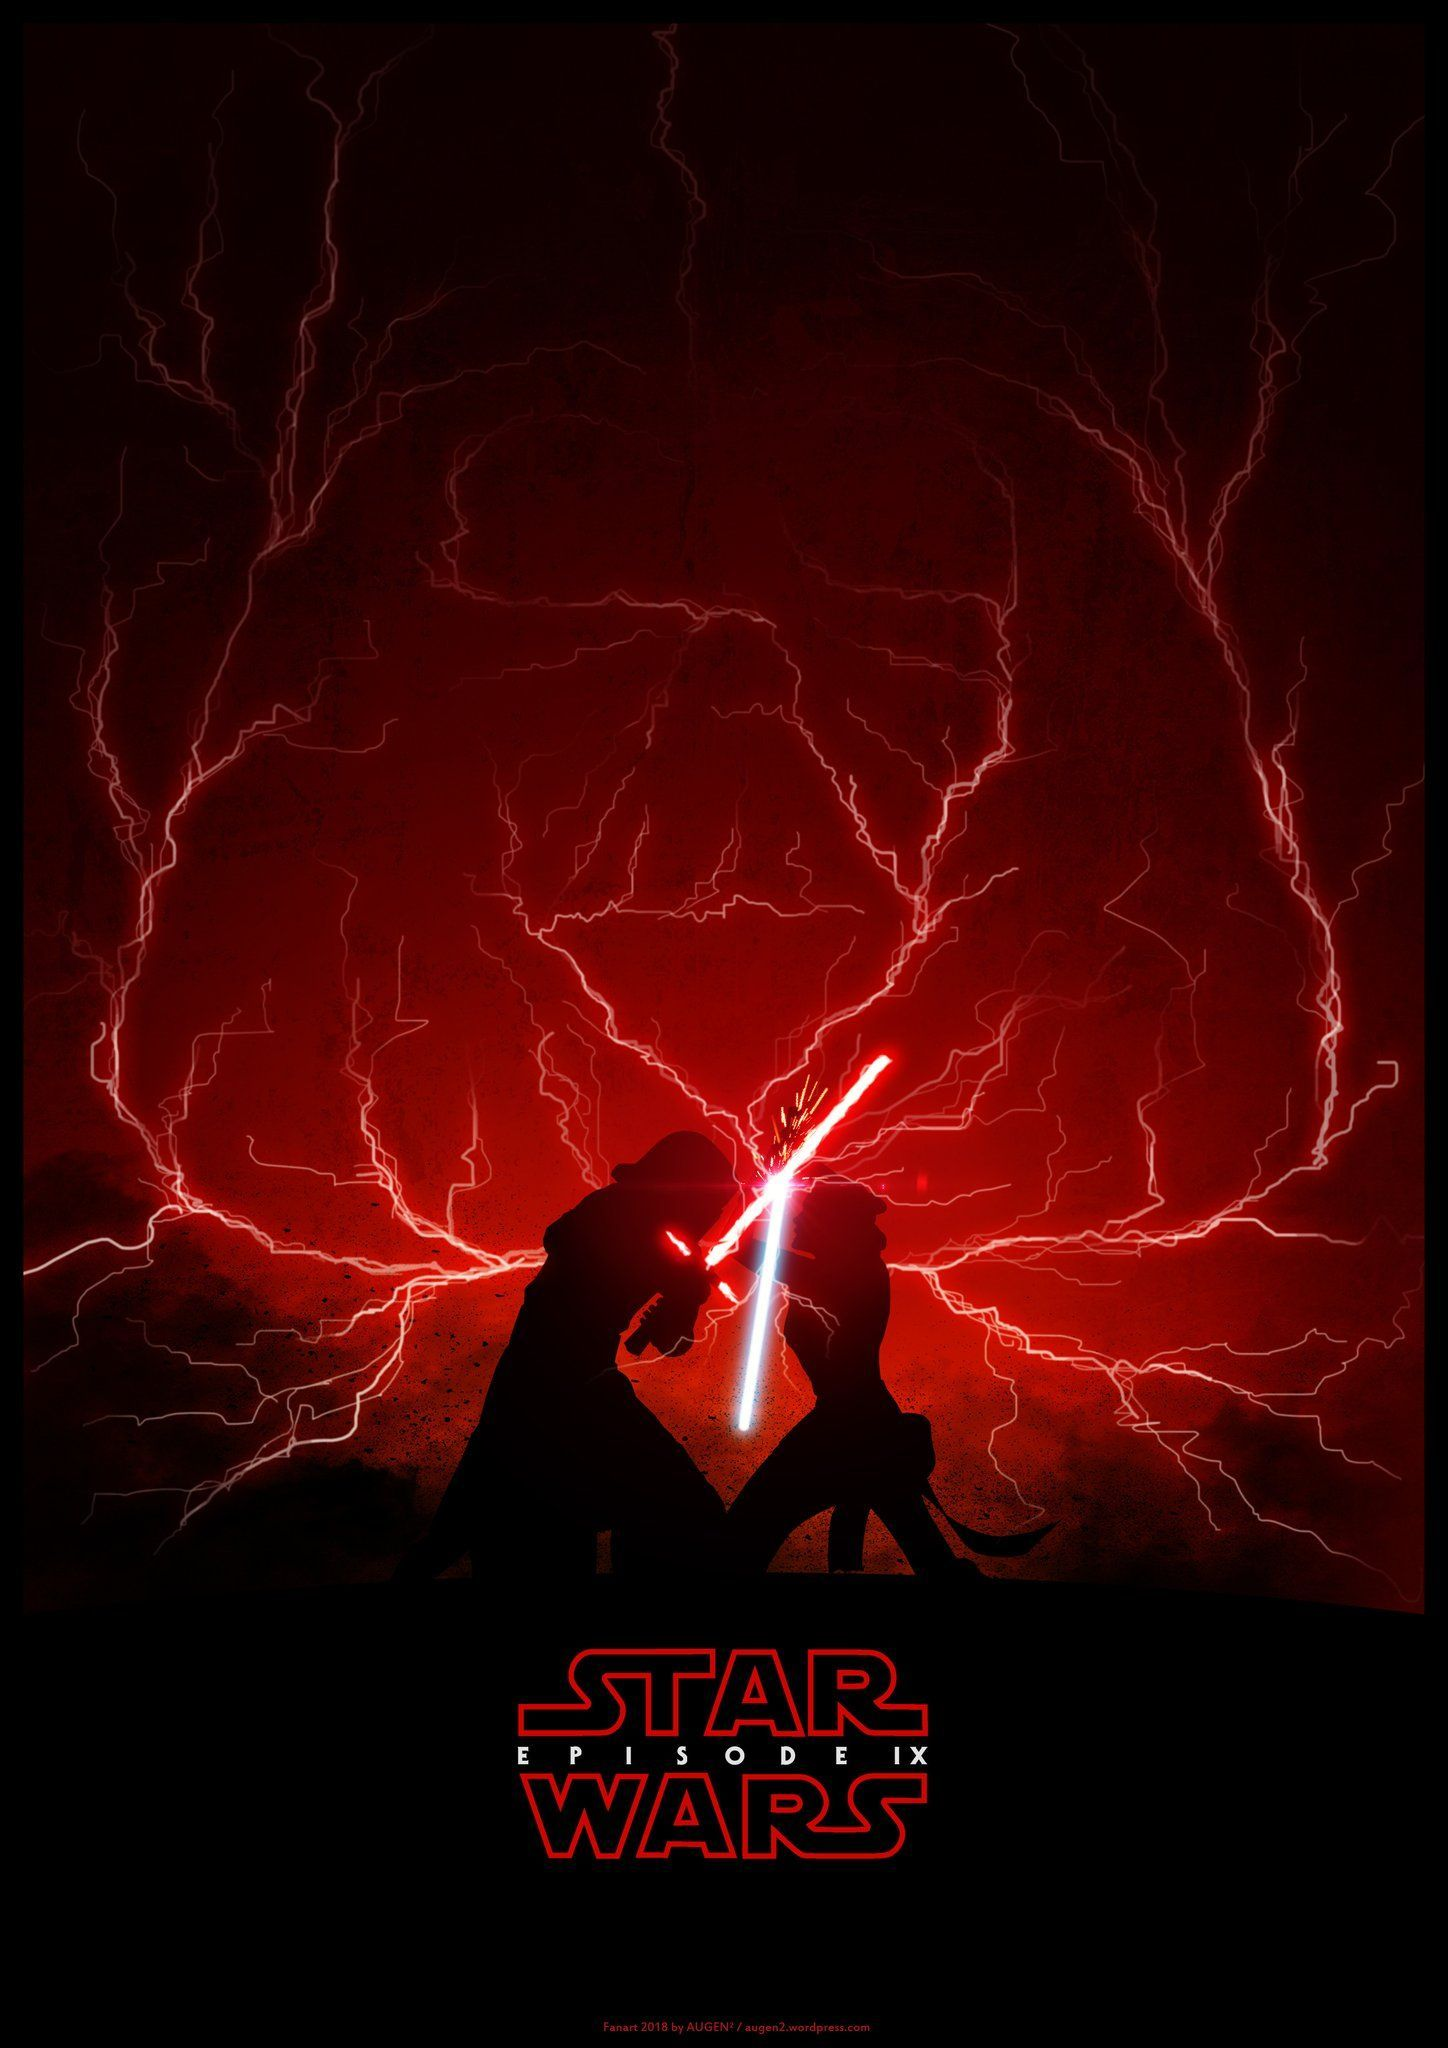 Star Wars The Rise Of Skywalker Hd Wallpapers 7wallpapers Net Star Wars Theories Star Wars Sith Star Wars Poster